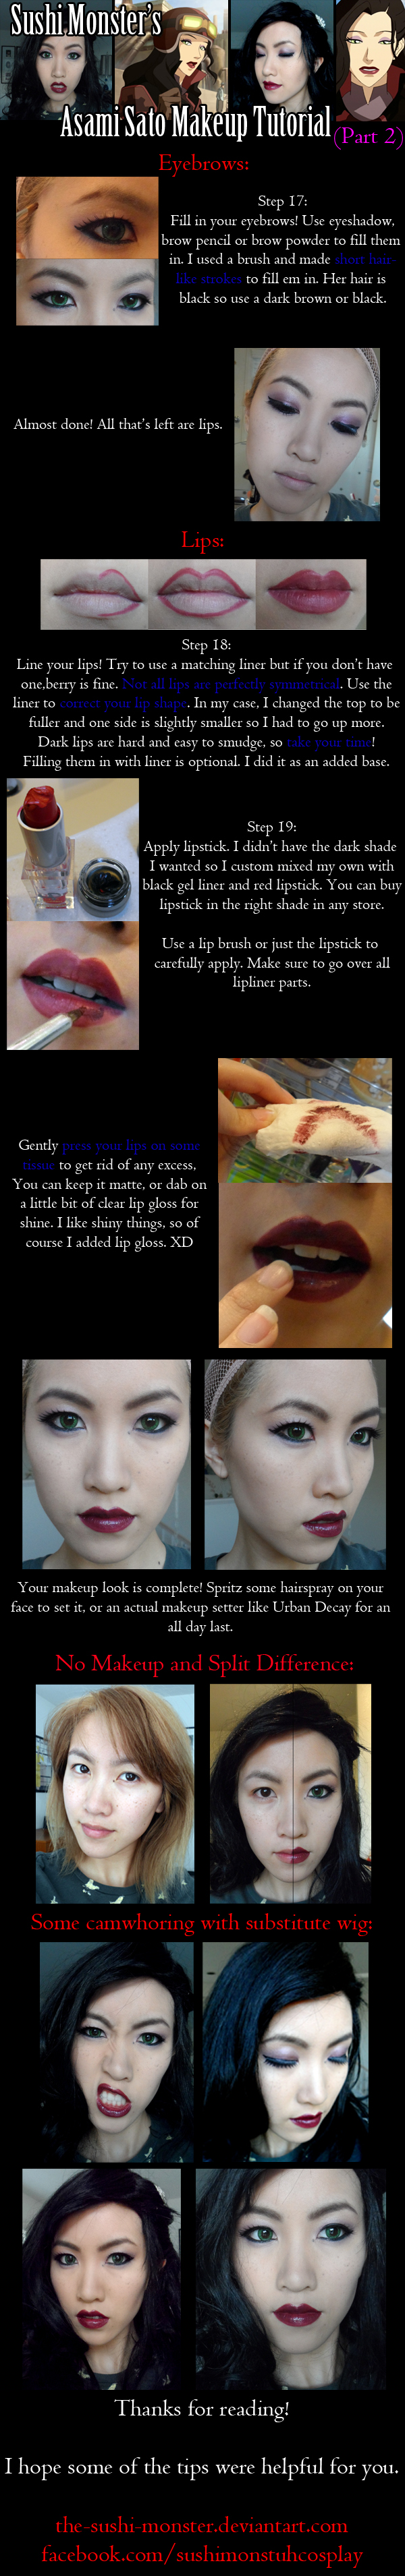 Asami Sato Makeup Tutorial Part Two by the-sushi-monster